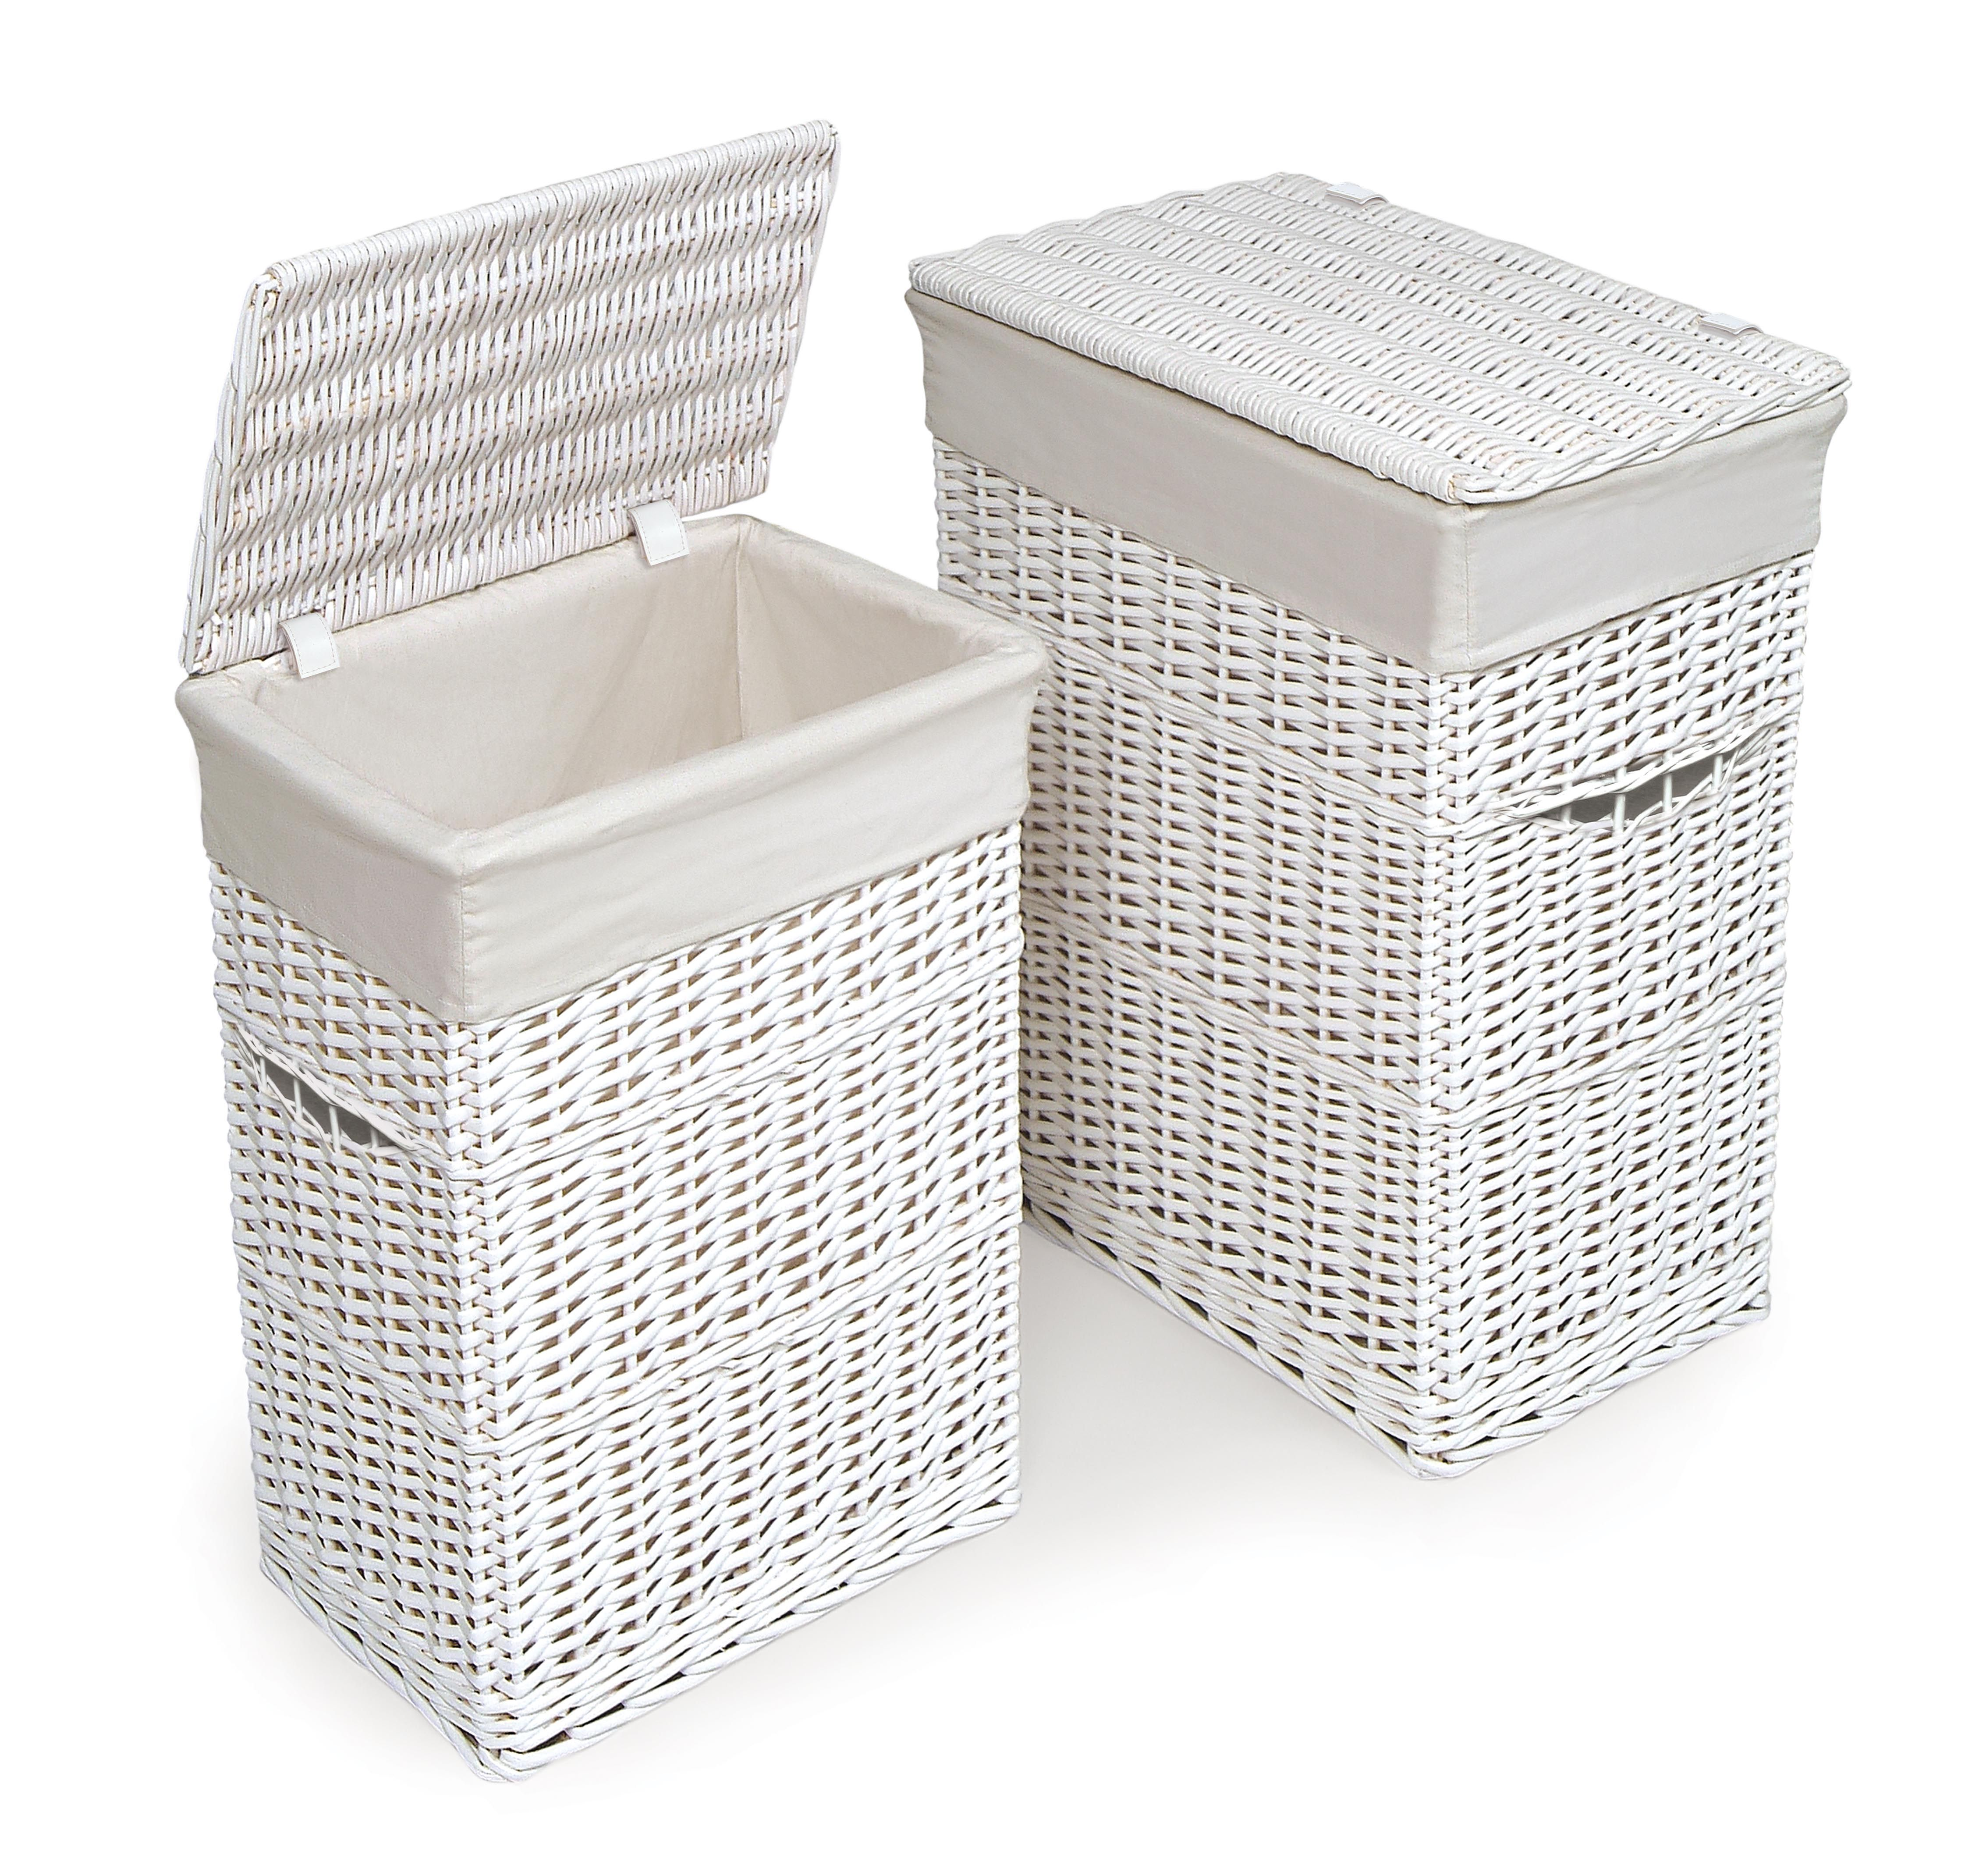 Badger Basket Wicker Laundry Hamper With Liners Set Of 2 White Walmart Com White Wicker Laundry Basket Wicker Laundry Hamper Laundry Hamper Wicker laundry hamper with liner